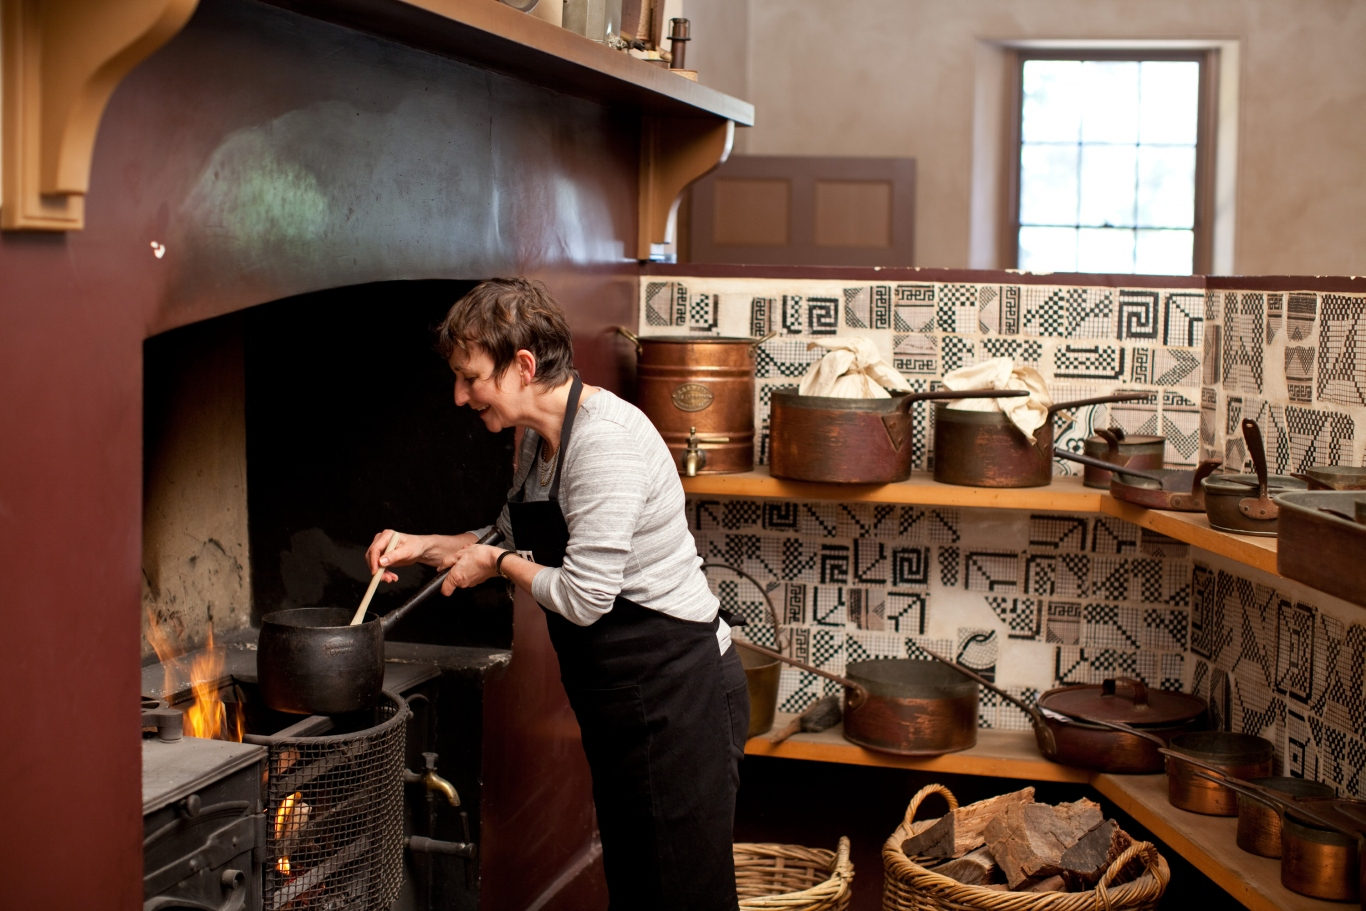 Kitchen interior with woman cooking over flame.